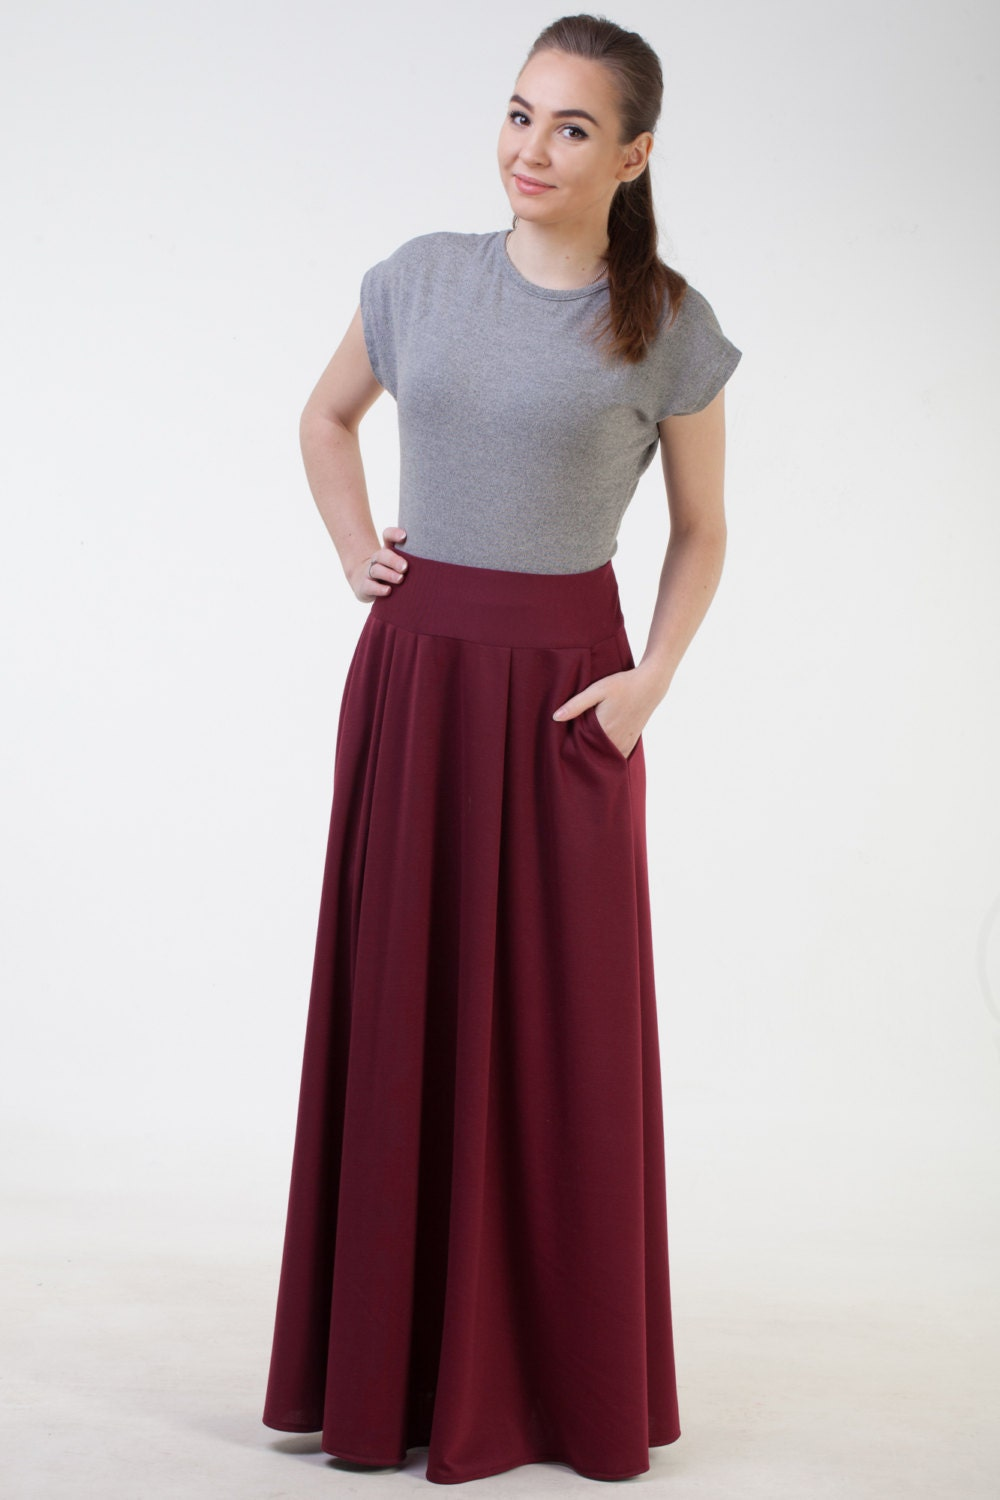 Find the latest and trendy styles of maxi skirts at ZAFUL. We are pleased you with the latest trends in high fashion maxi skirts.